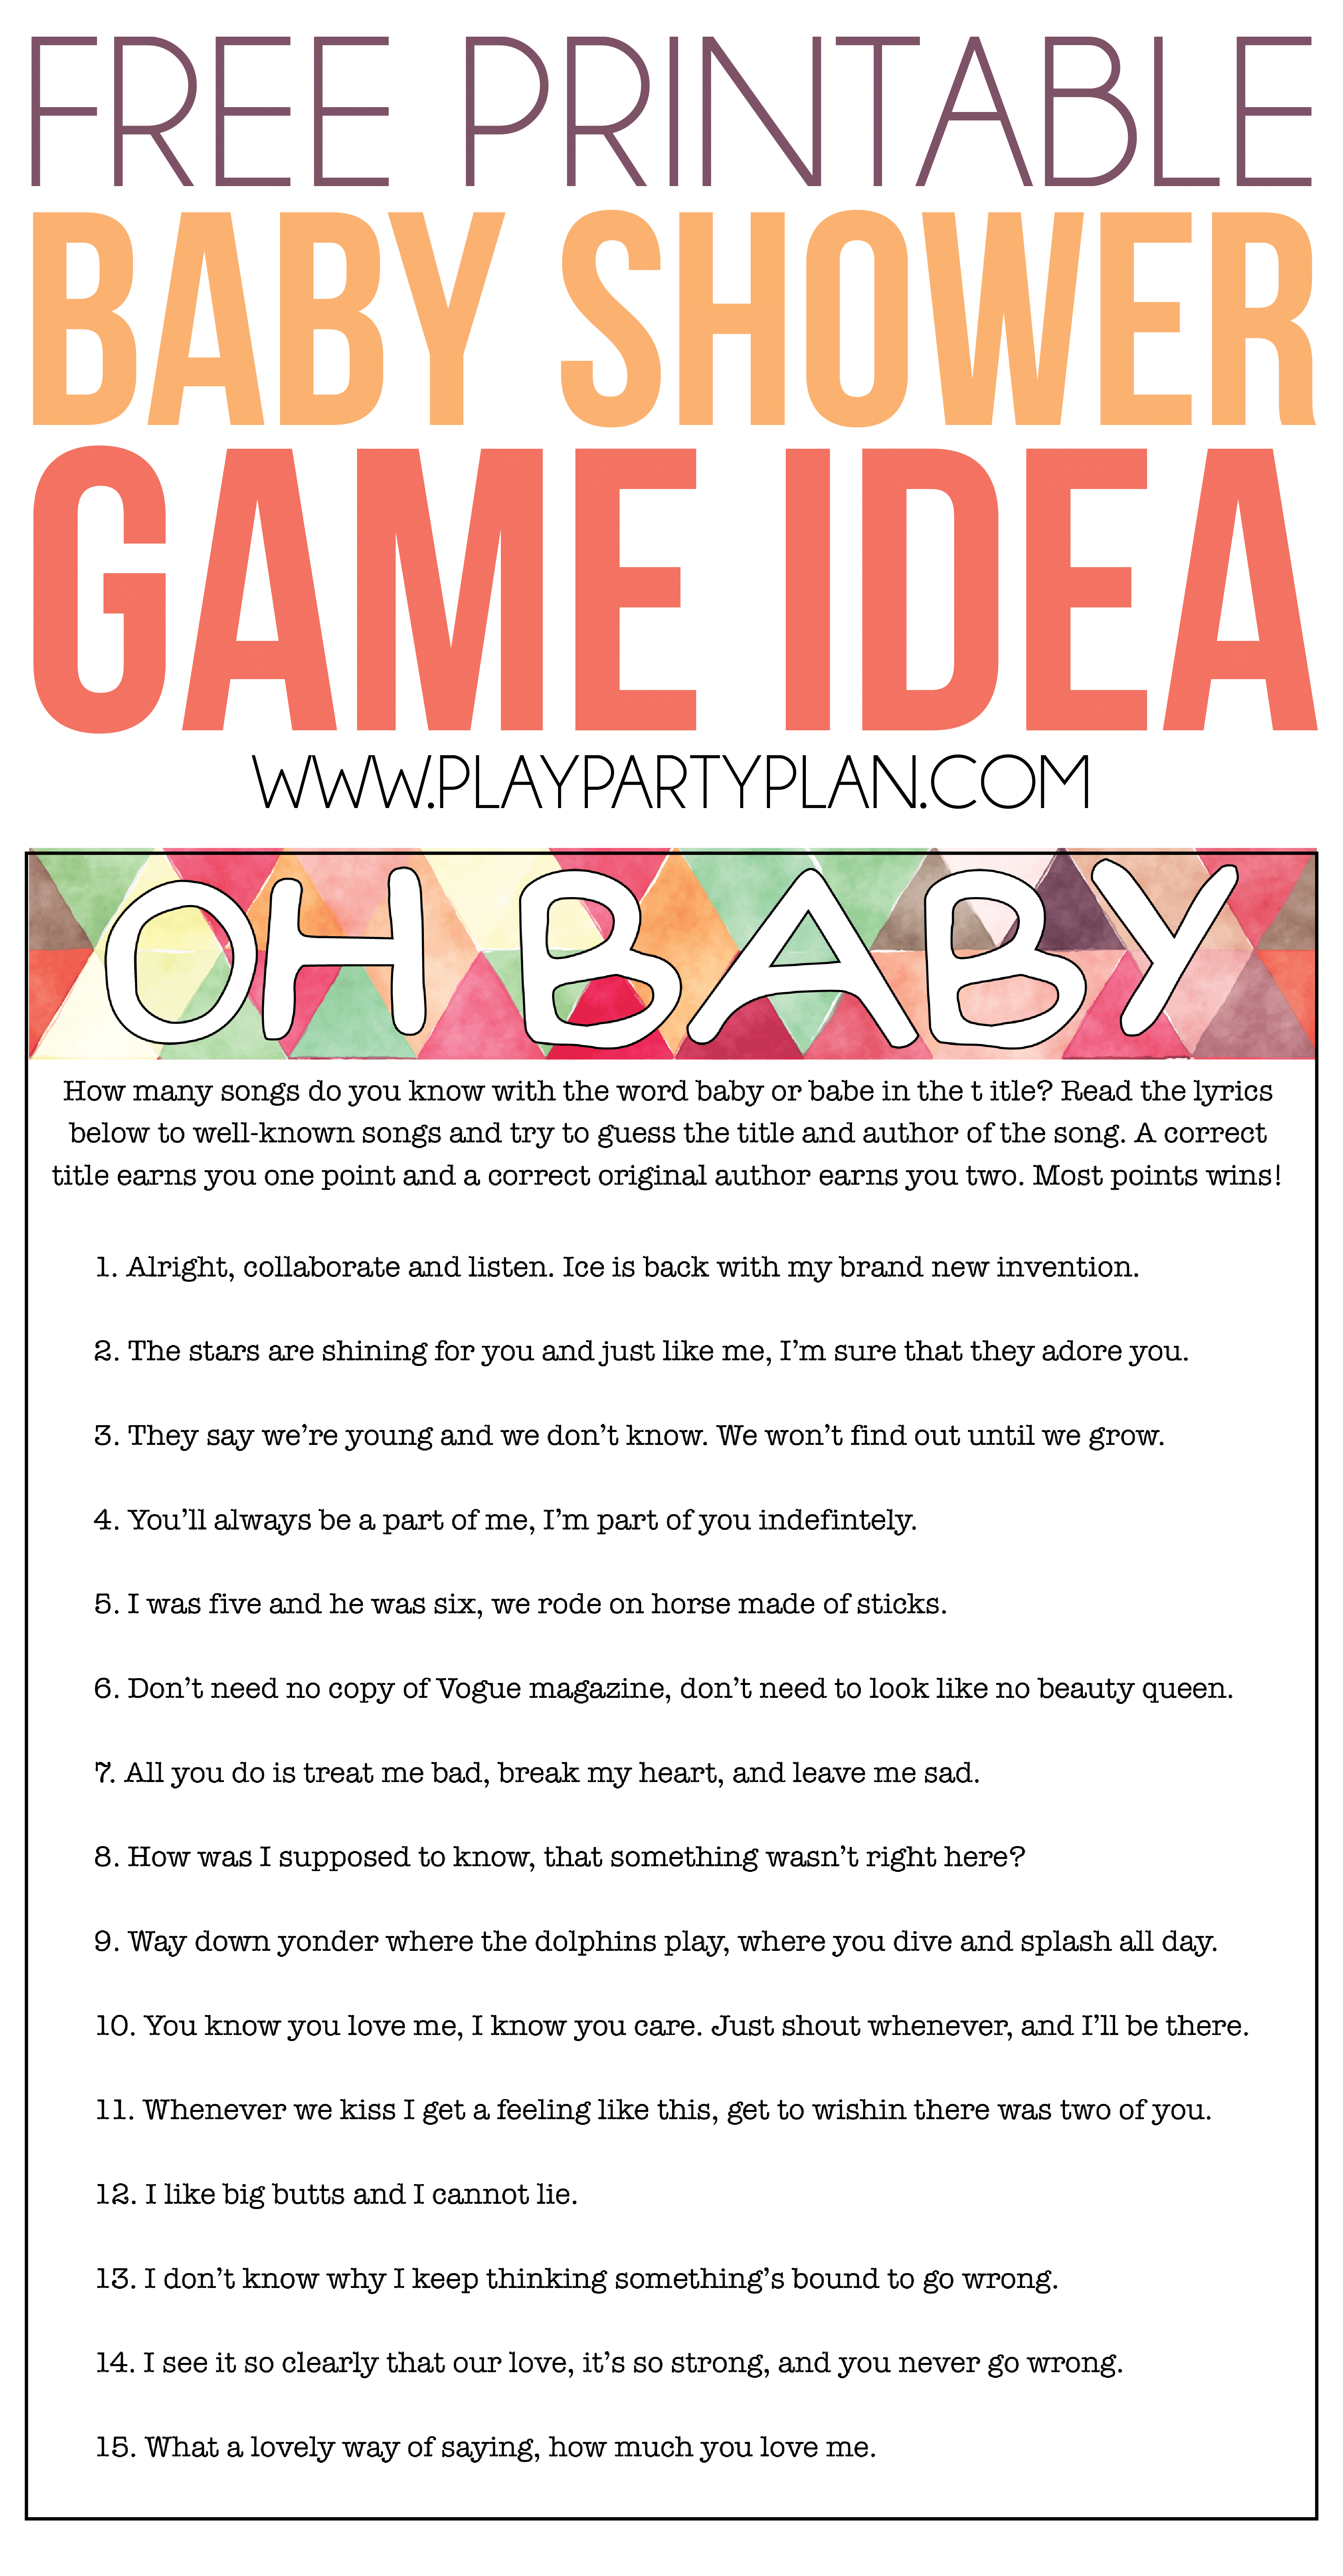 Free Printable Baby Shower Songs Guessing Game - Play Party Plan - Find The Guest Baby Shower Game Free Printable